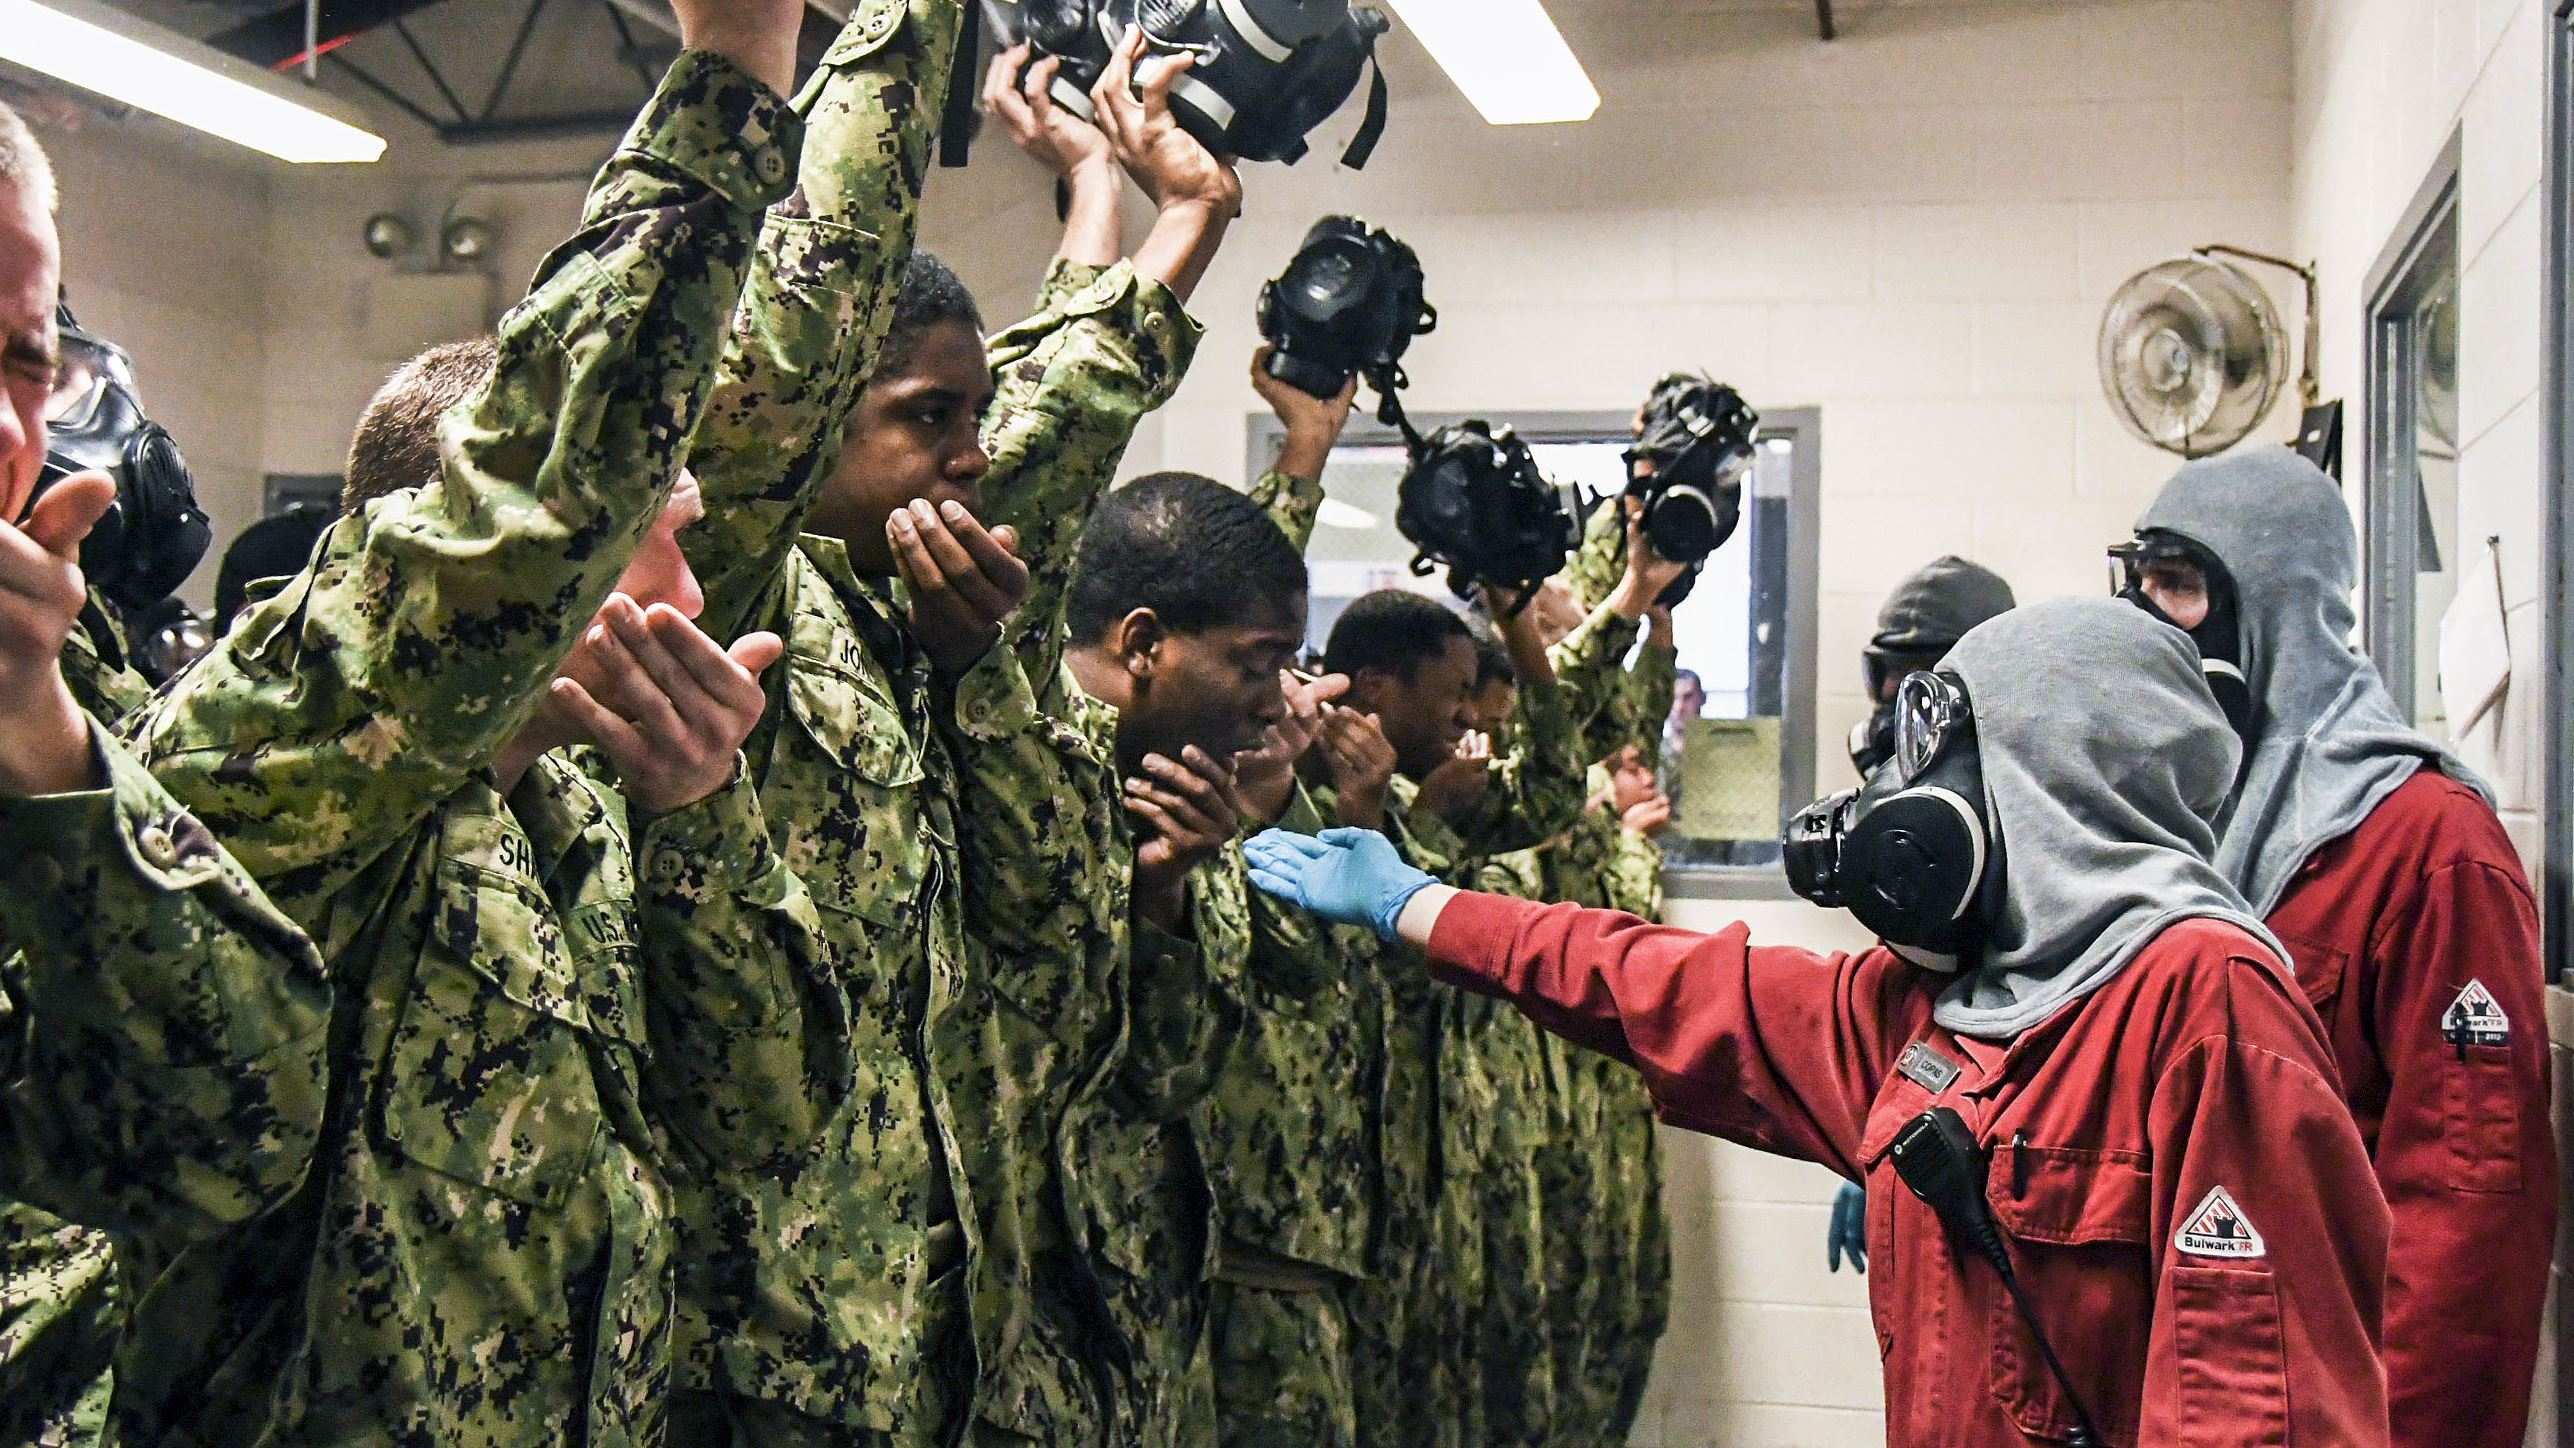 Navy recruits recite their names and division numbers while experiencing the effects of tear gas at Recruit Training Command in Great Lakes, Ill., Jan. 10, 2018. Navy photo by Amanda S. Kitchner